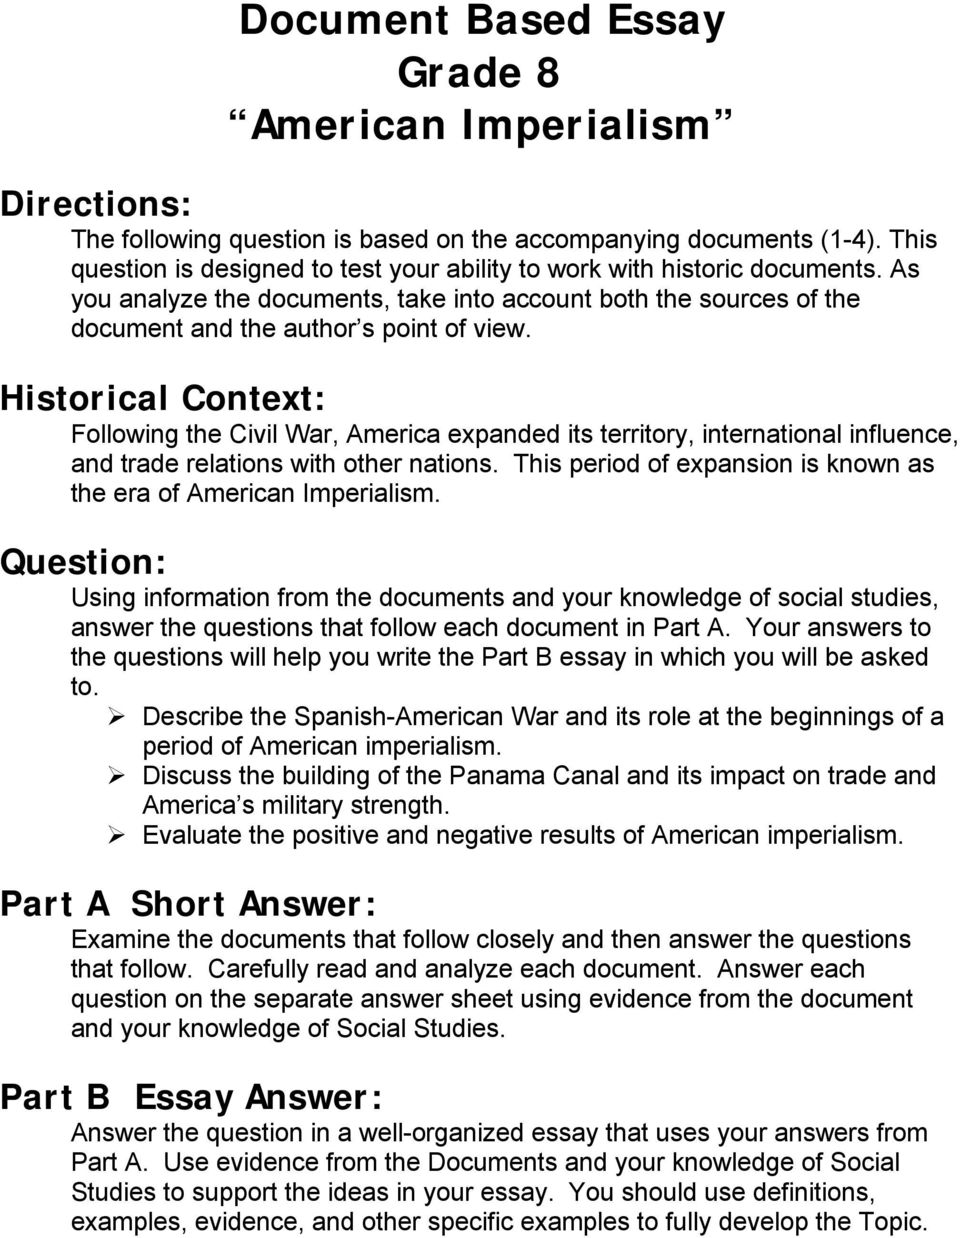 document based essay grade american imperialism pdf historical context following the civil war america expanded its territory international influence